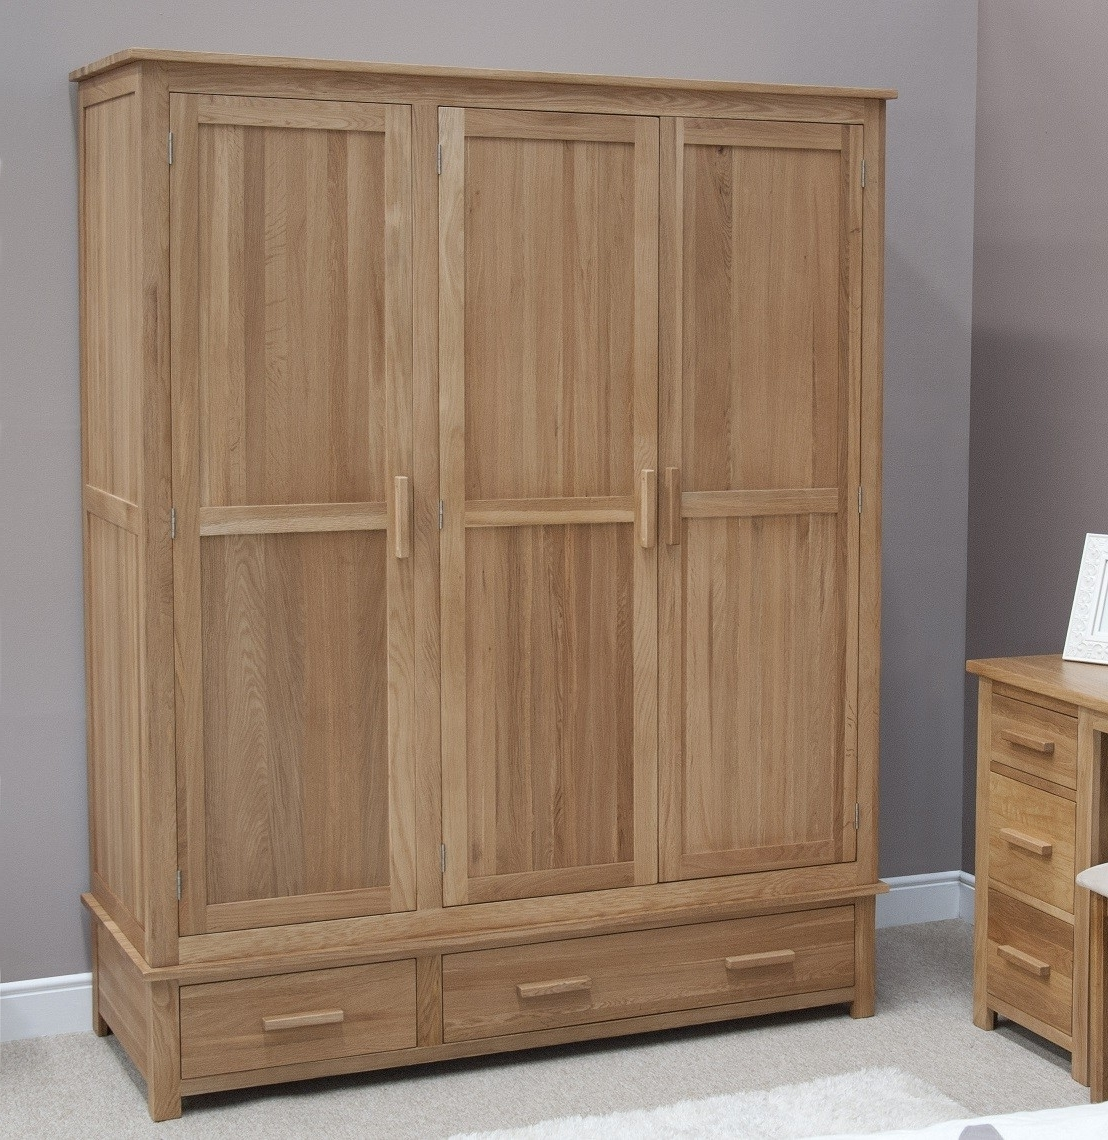 Oak Furniture Uk With Trendy Wood Wardrobes (View 10 of 15)